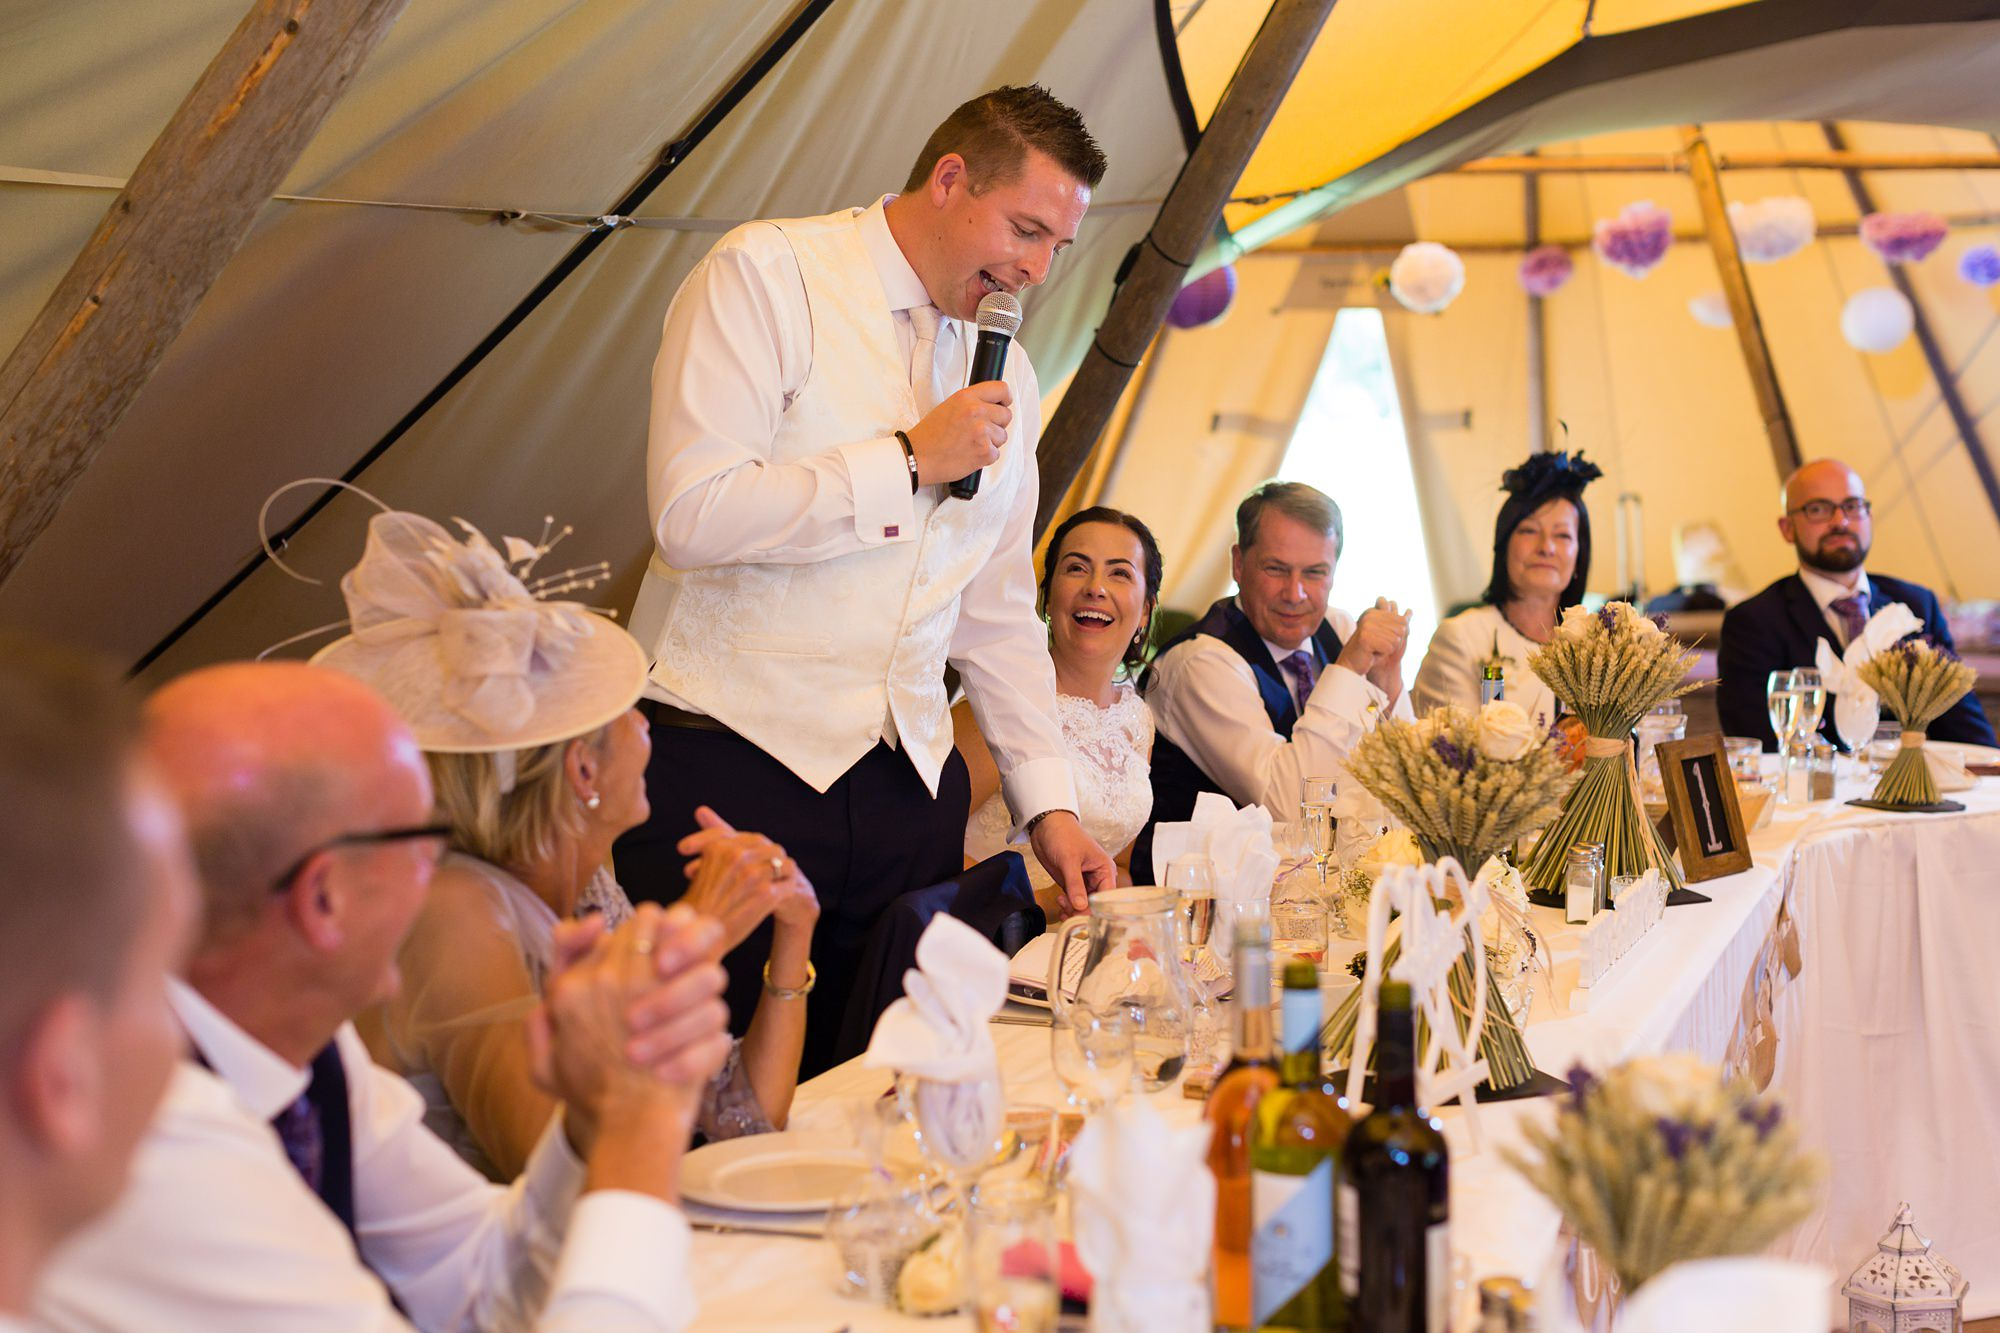 Bell Hall Wedding Photography speeches inside the tipi